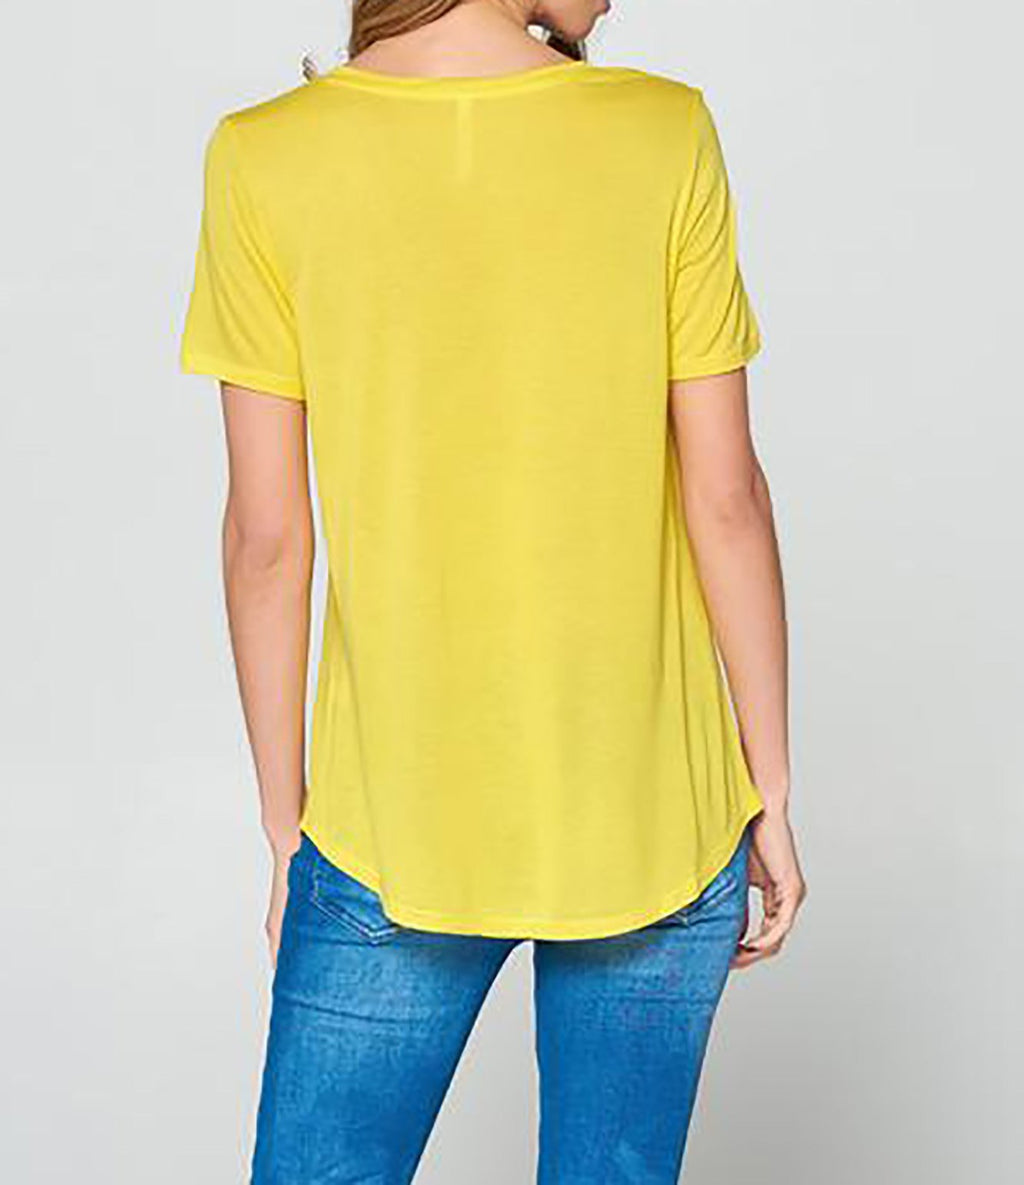 Velocity Boyfriend Tee_ Bright Yellow Clothing Fair Shade LLC